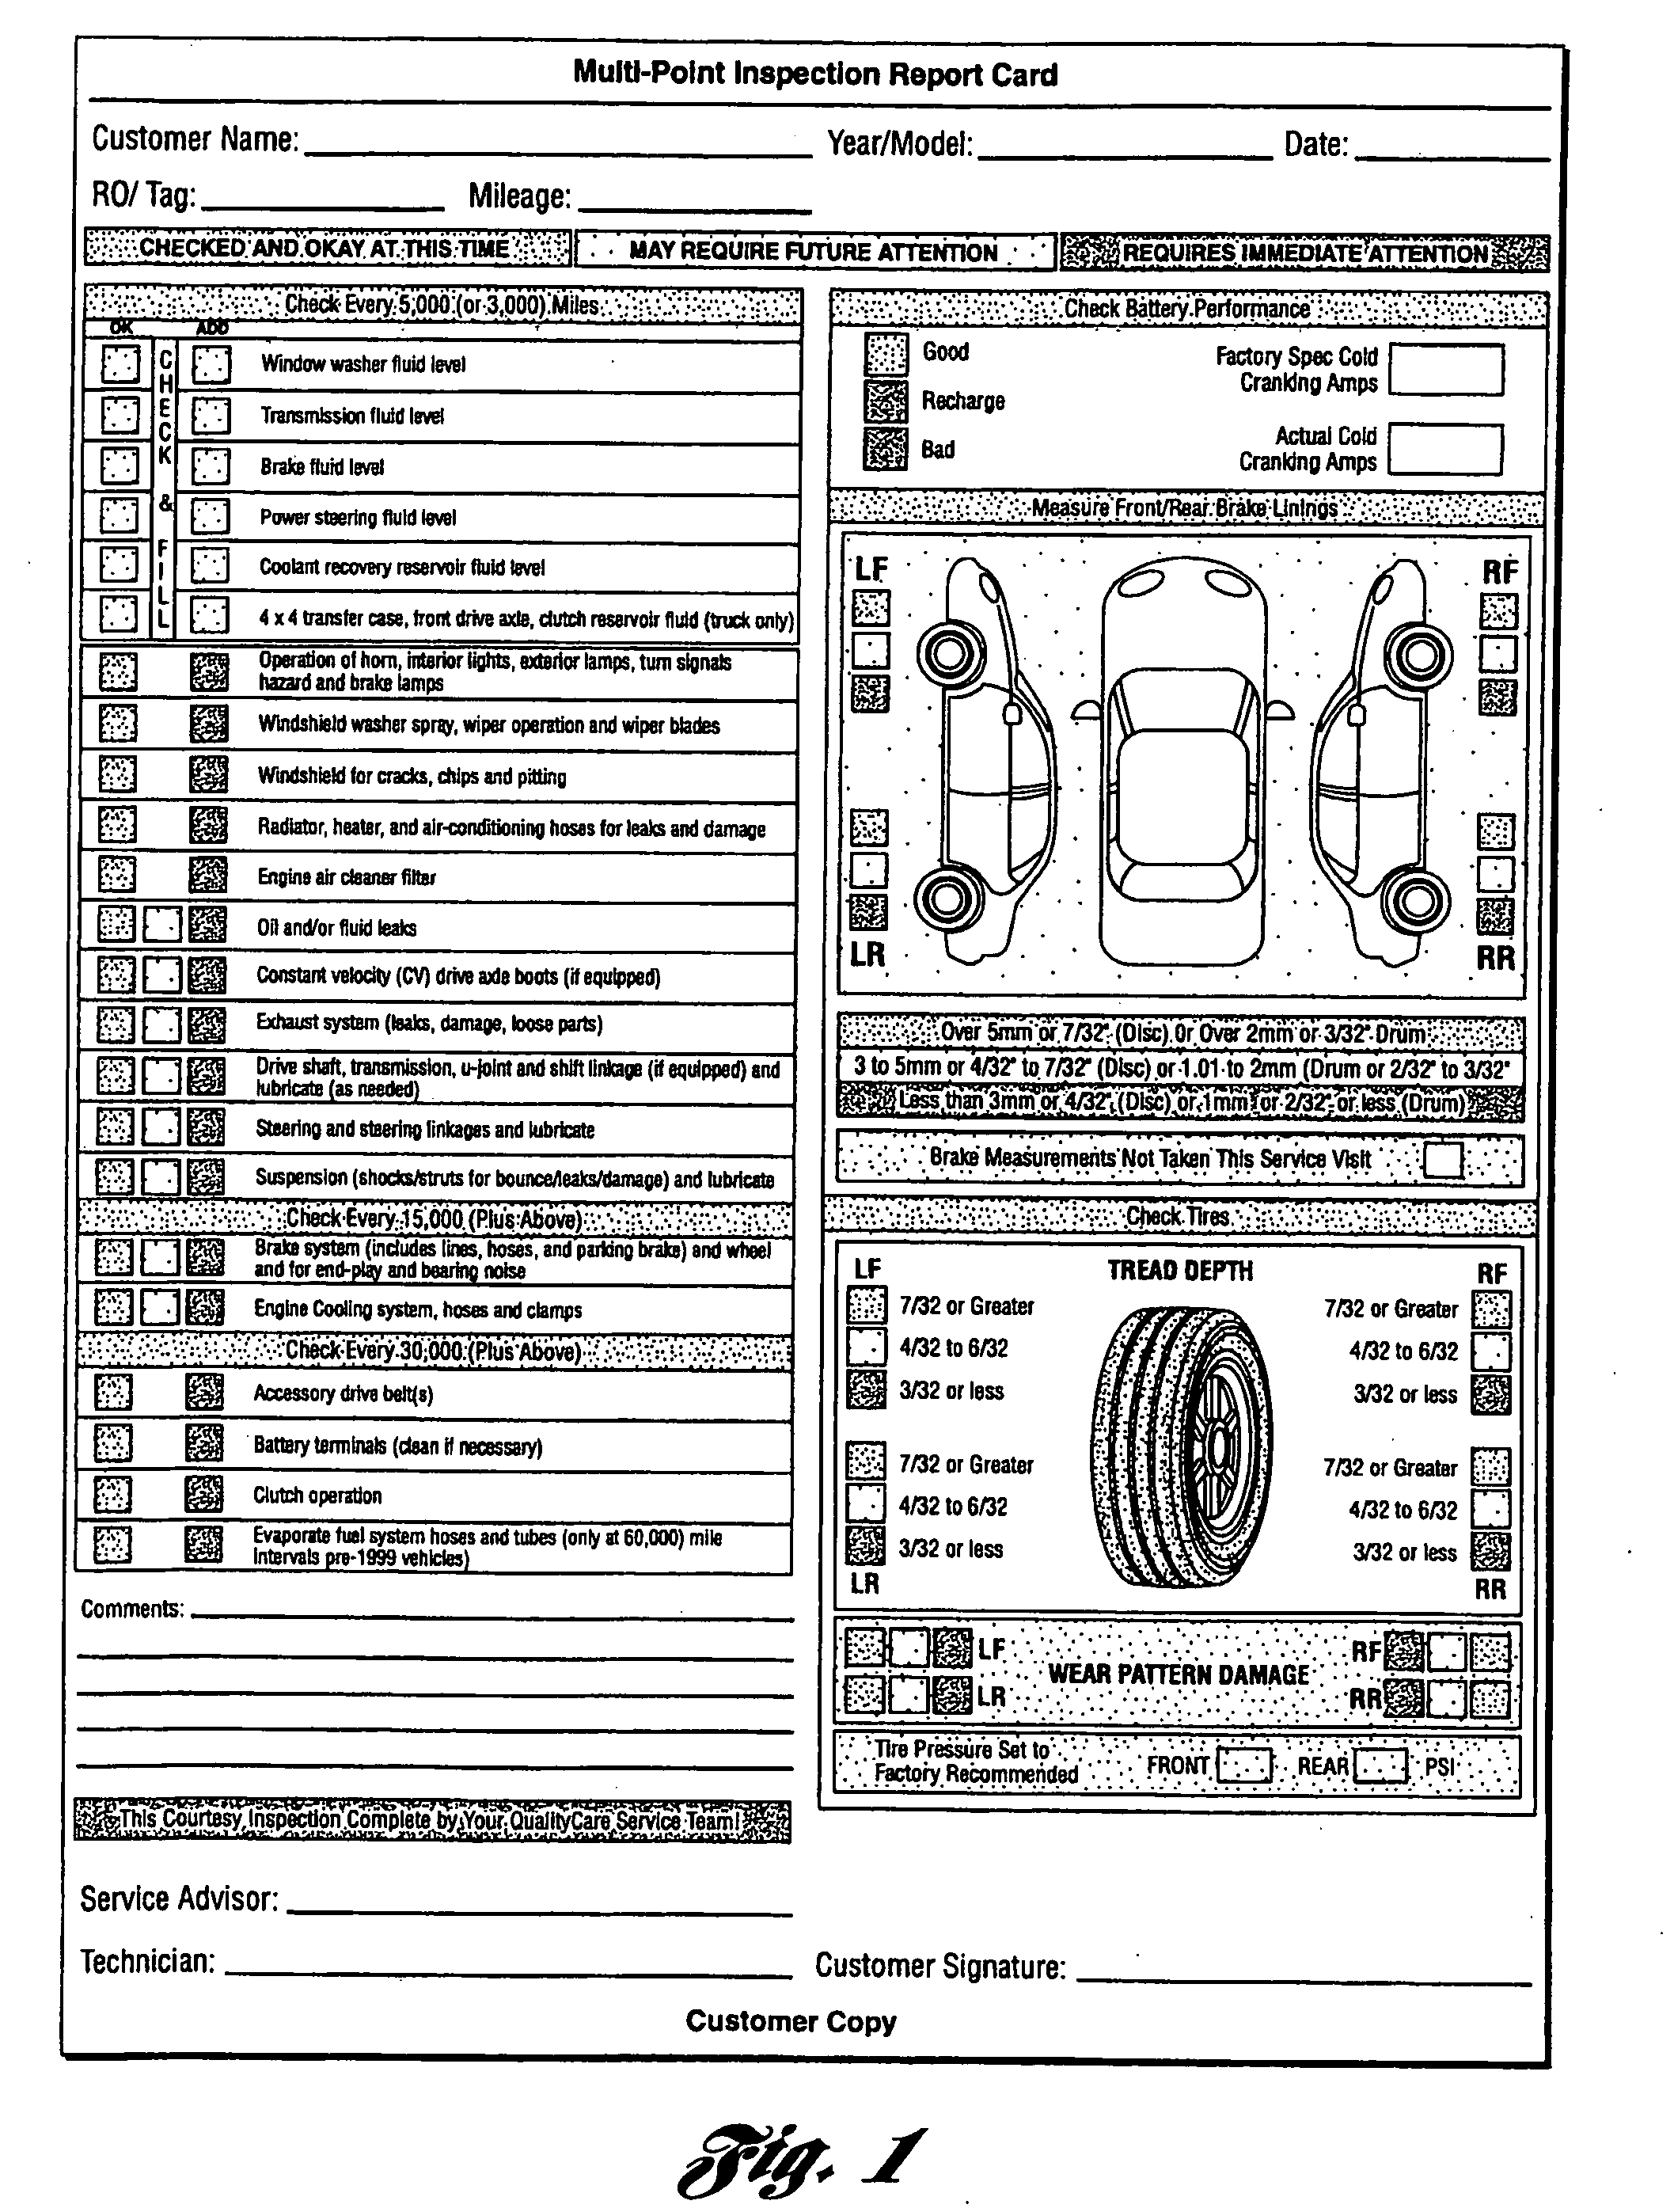 Multi-point inspection report card as recommended by ford motor ...